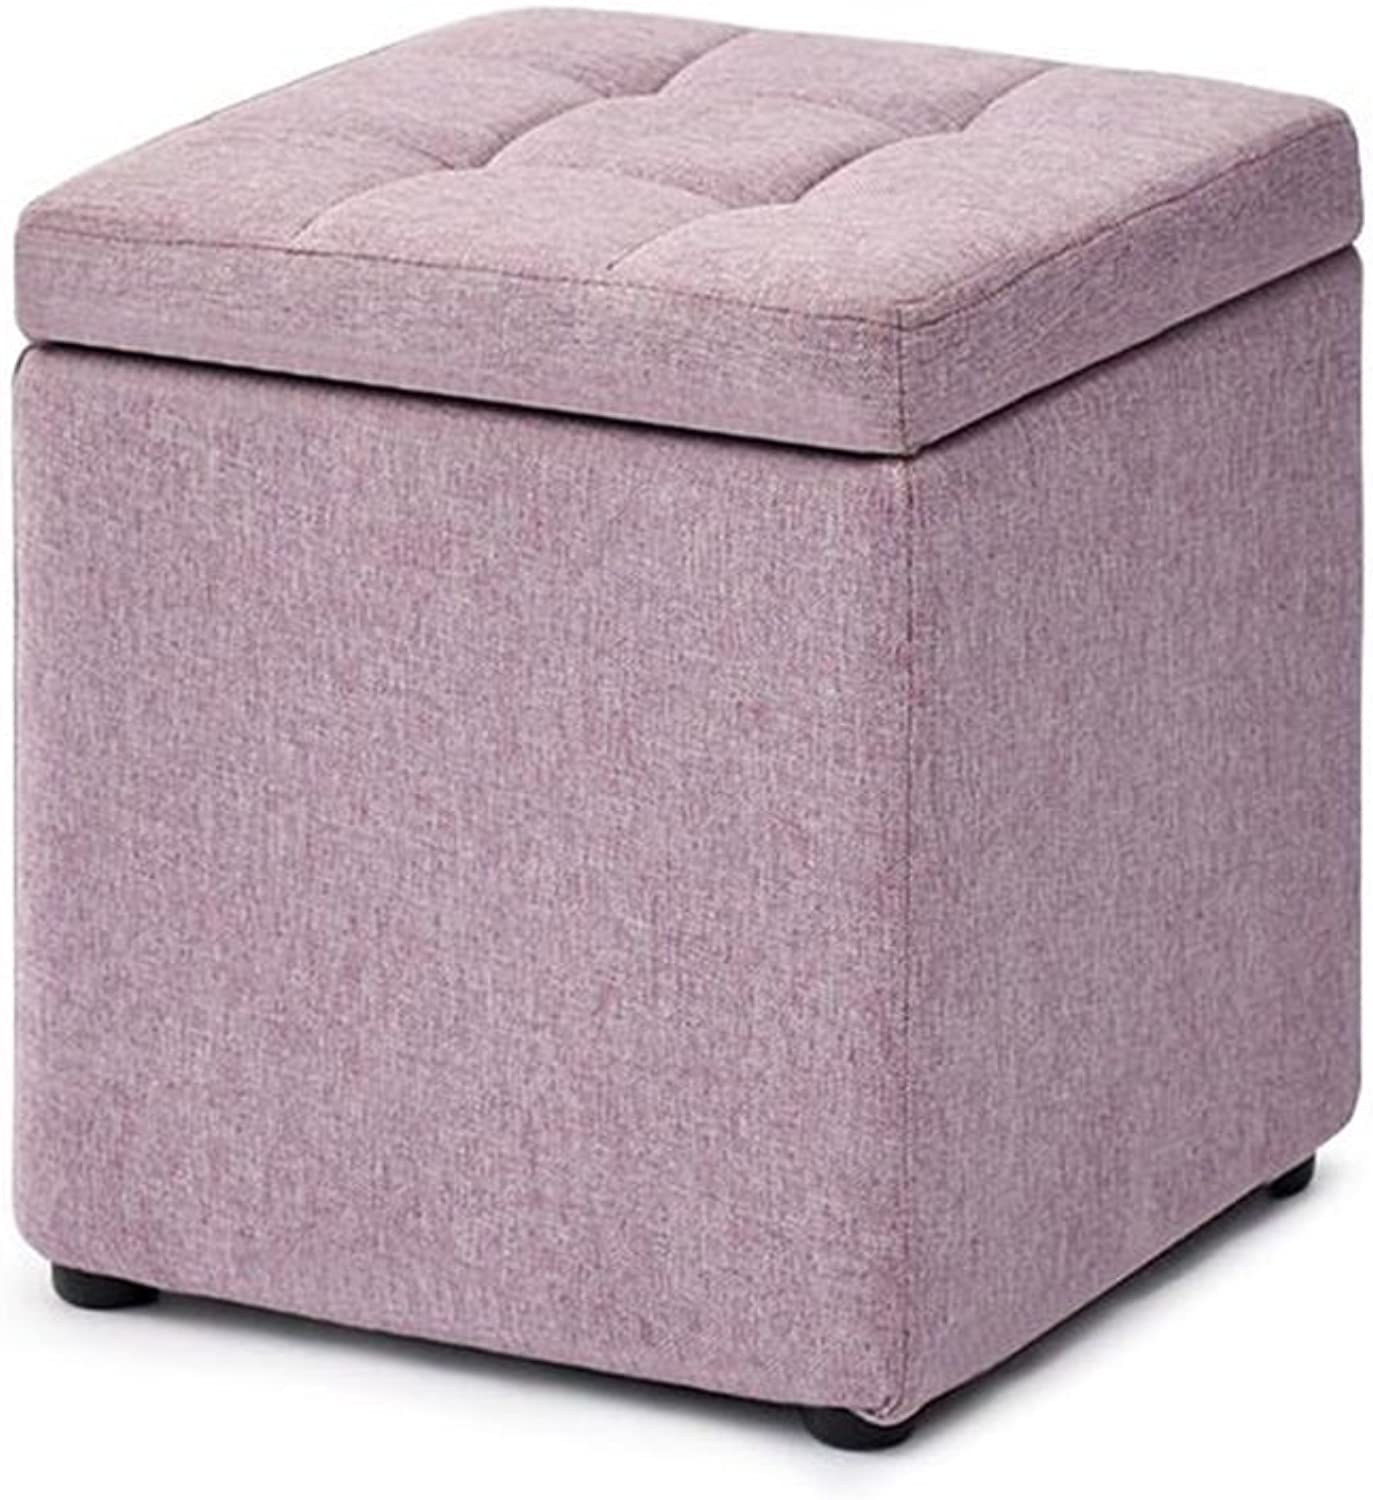 Upholstered Foot Storage Stool Living Room Sofa Dressing Change shoes Stool Foot Rest Small Chair Seat Pouf Storage Beanbag Footrest(30cmX30cmX35cm) Sturdy and Beautiful